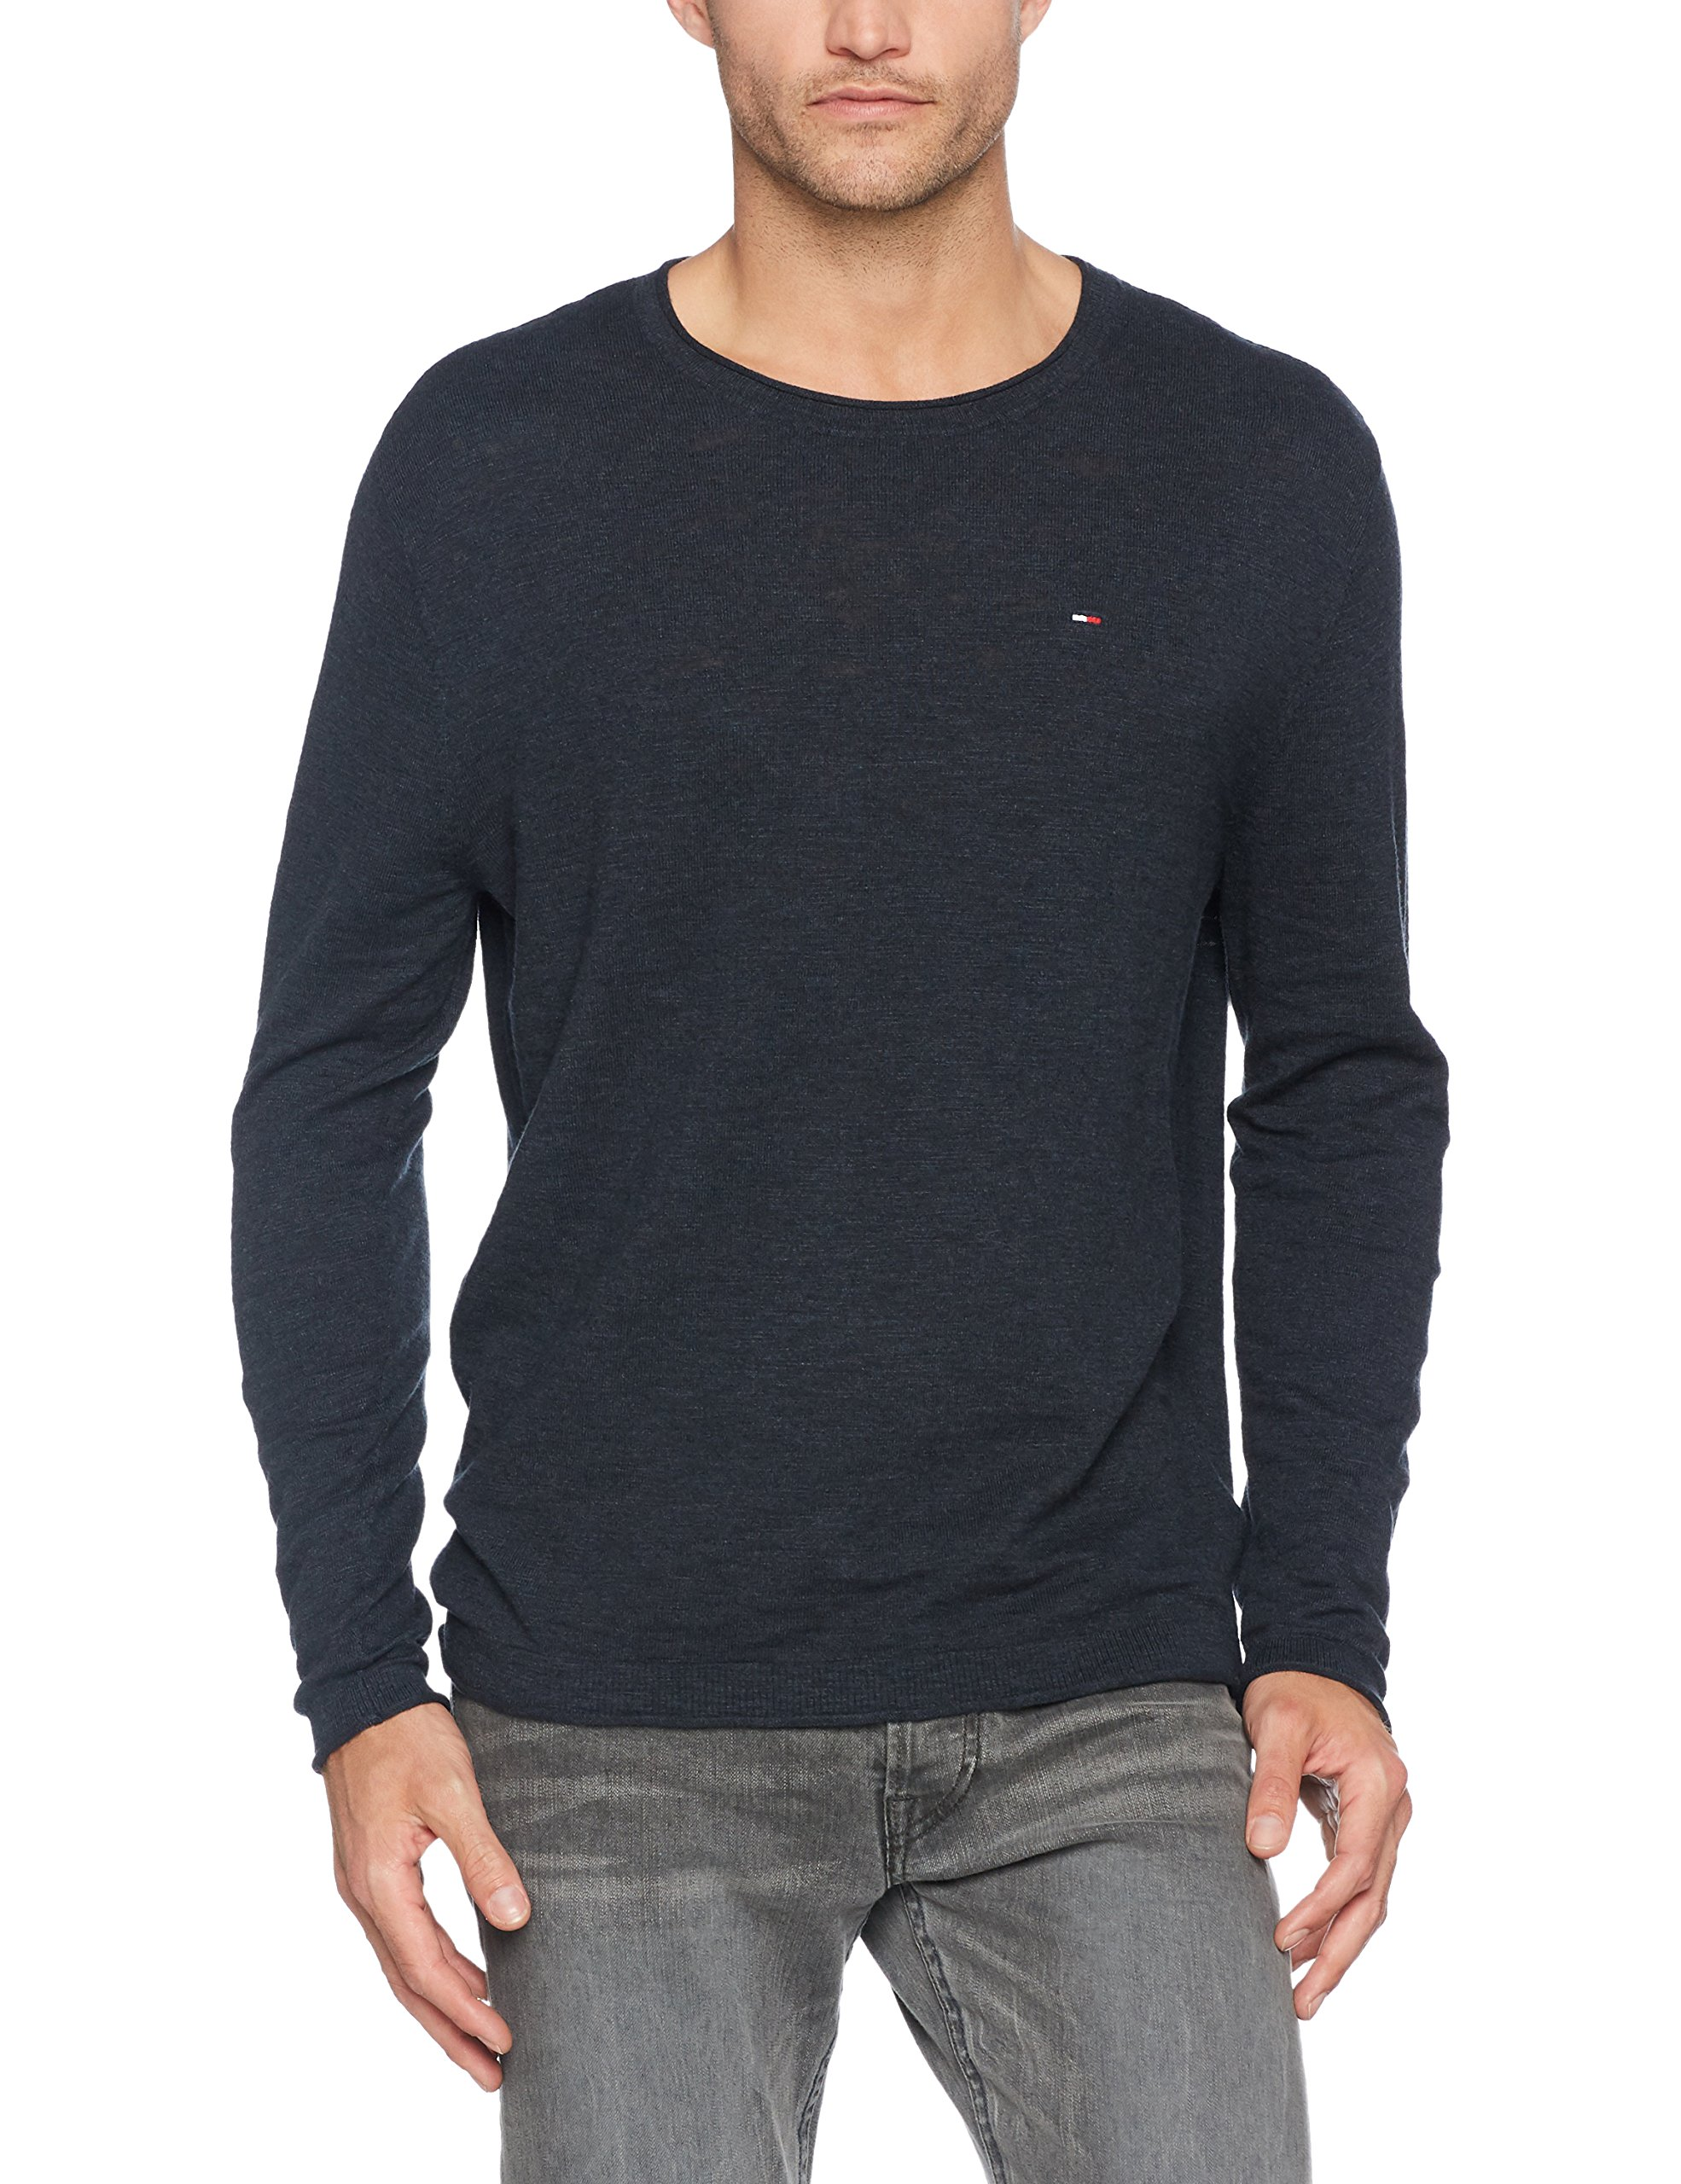 Coupe small s Jeans Homme Droite Pull Sweater L Longues Tommy Bleuvulcan Manches Basic HtrX Cn 1 byYfg76v